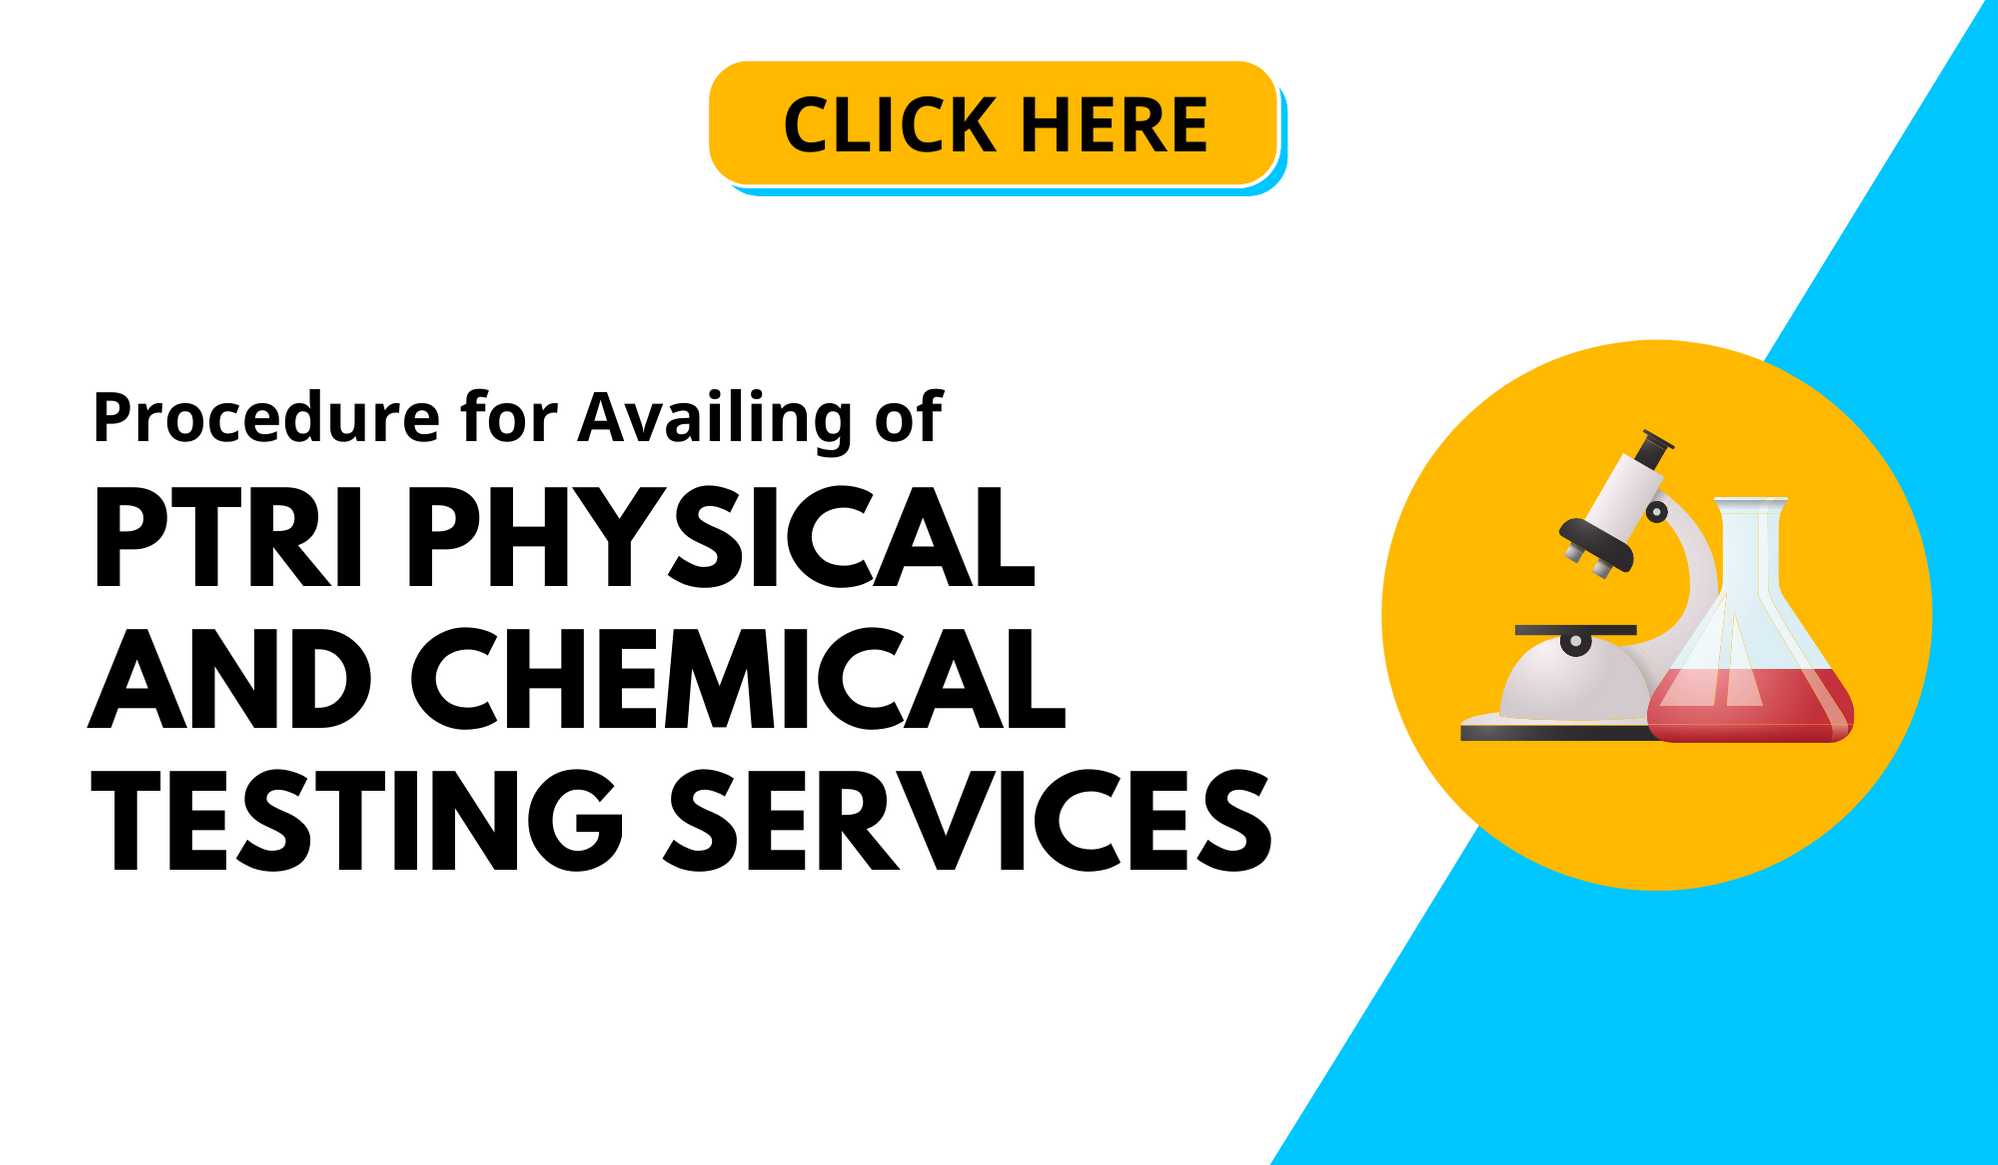 Procedure for availing of PTRI TESTING SERVICES CHEMICAL AND PHYSICAL TESTING LABORATORY